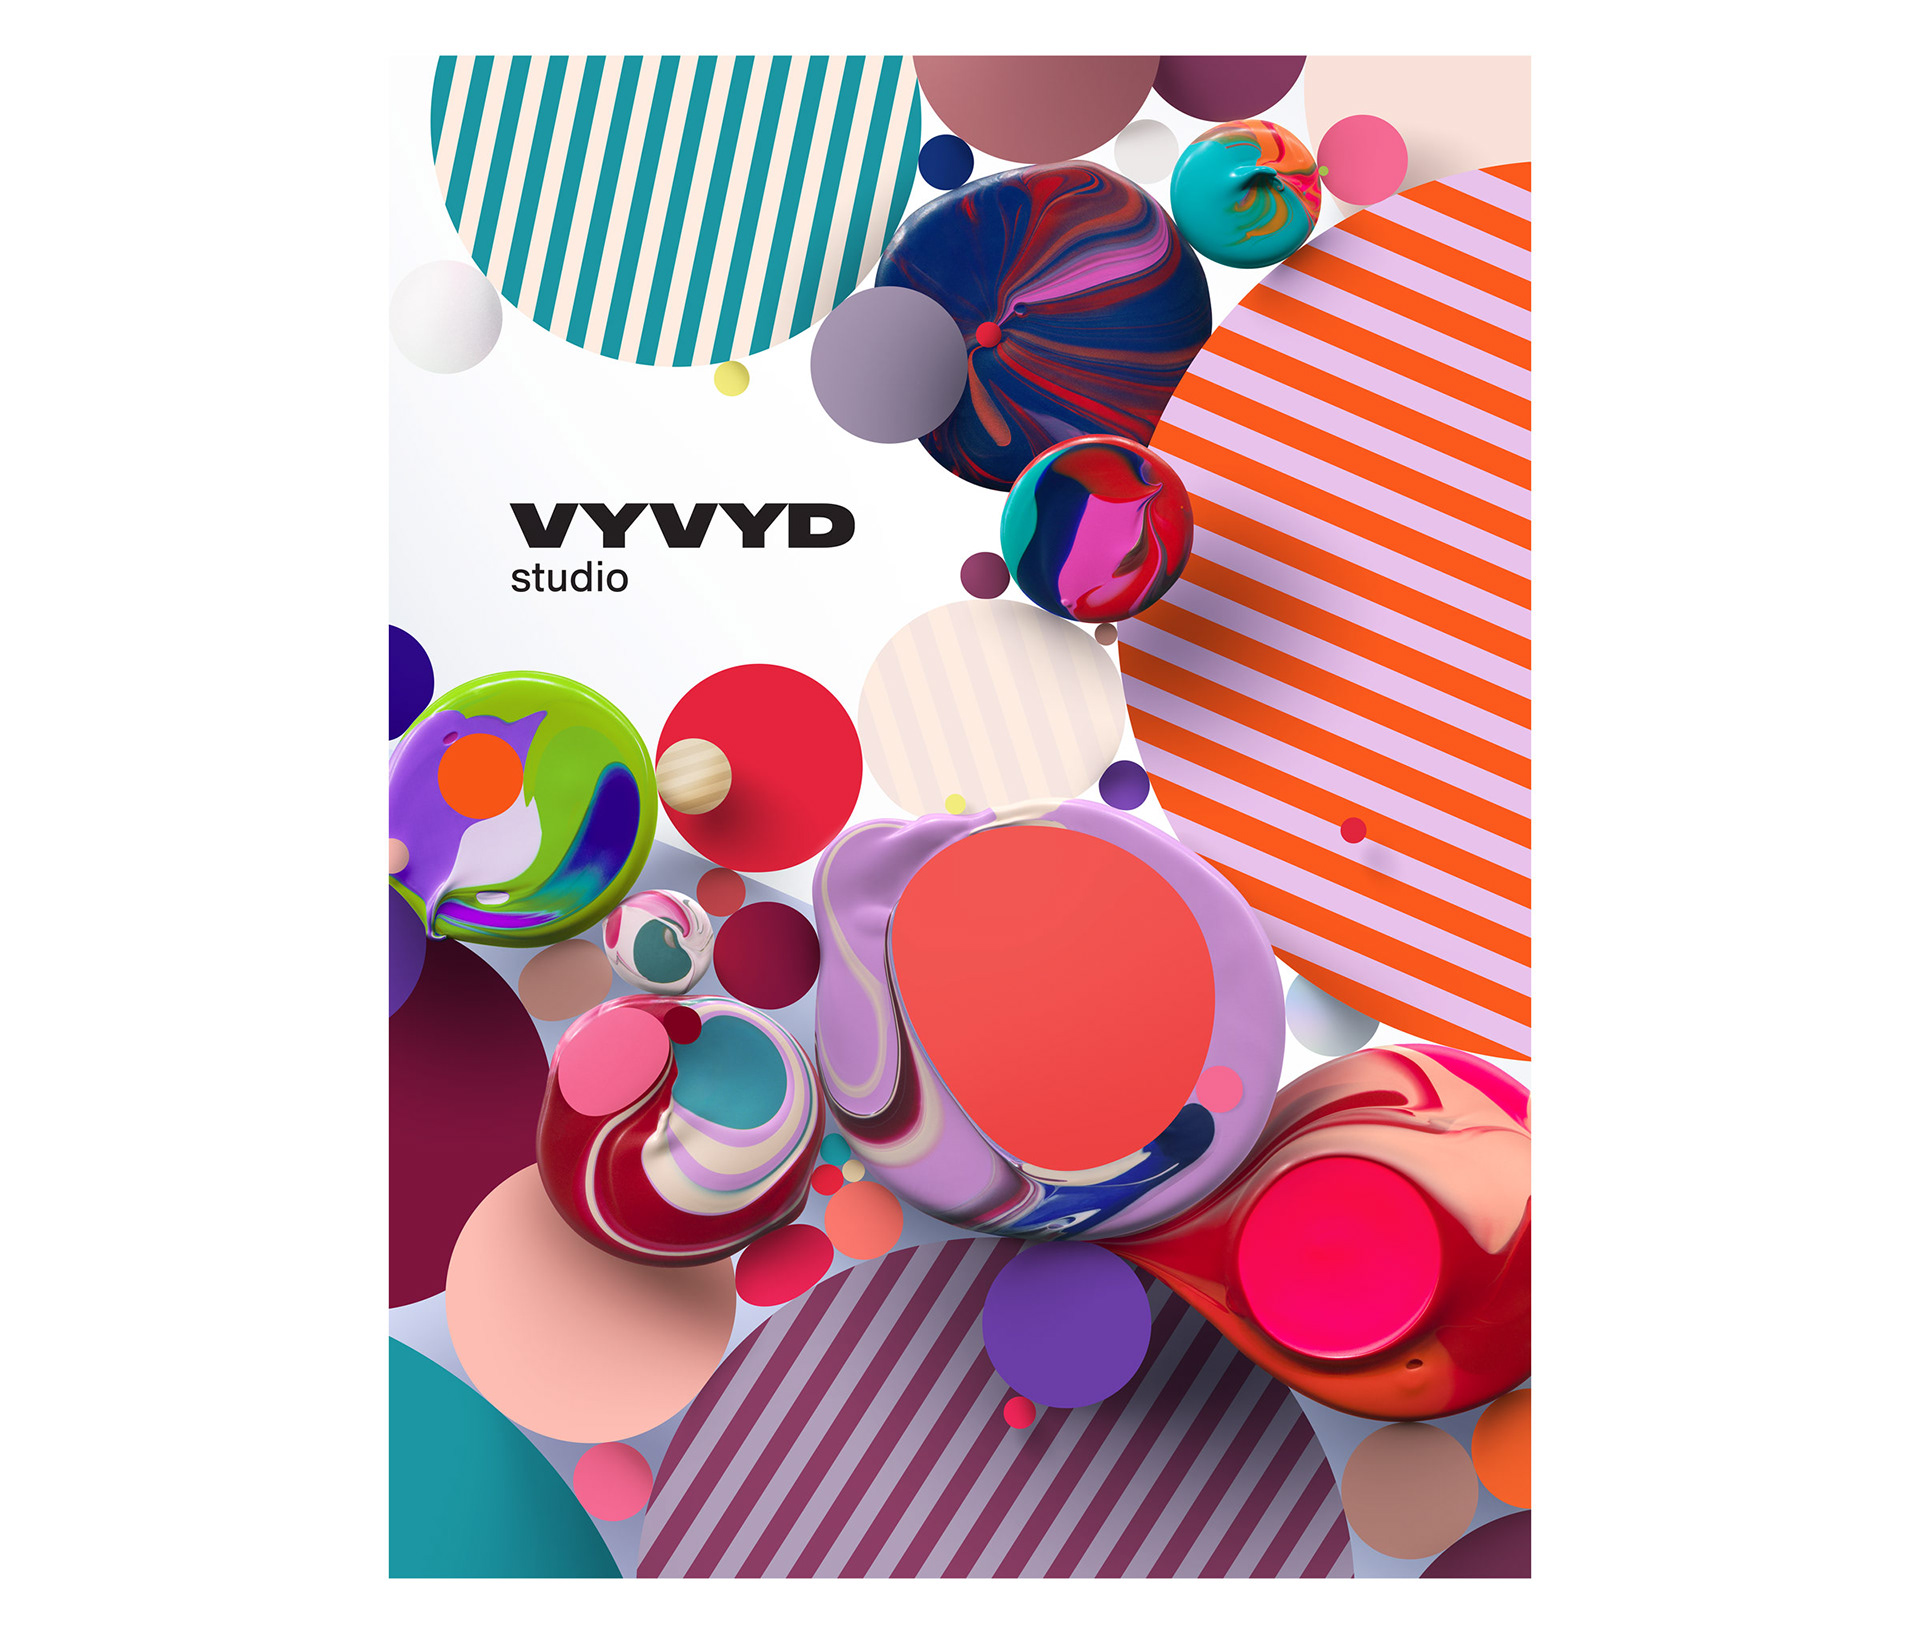 Art pieces made of 24 brand colors for VYVYD Studio - Digital Art